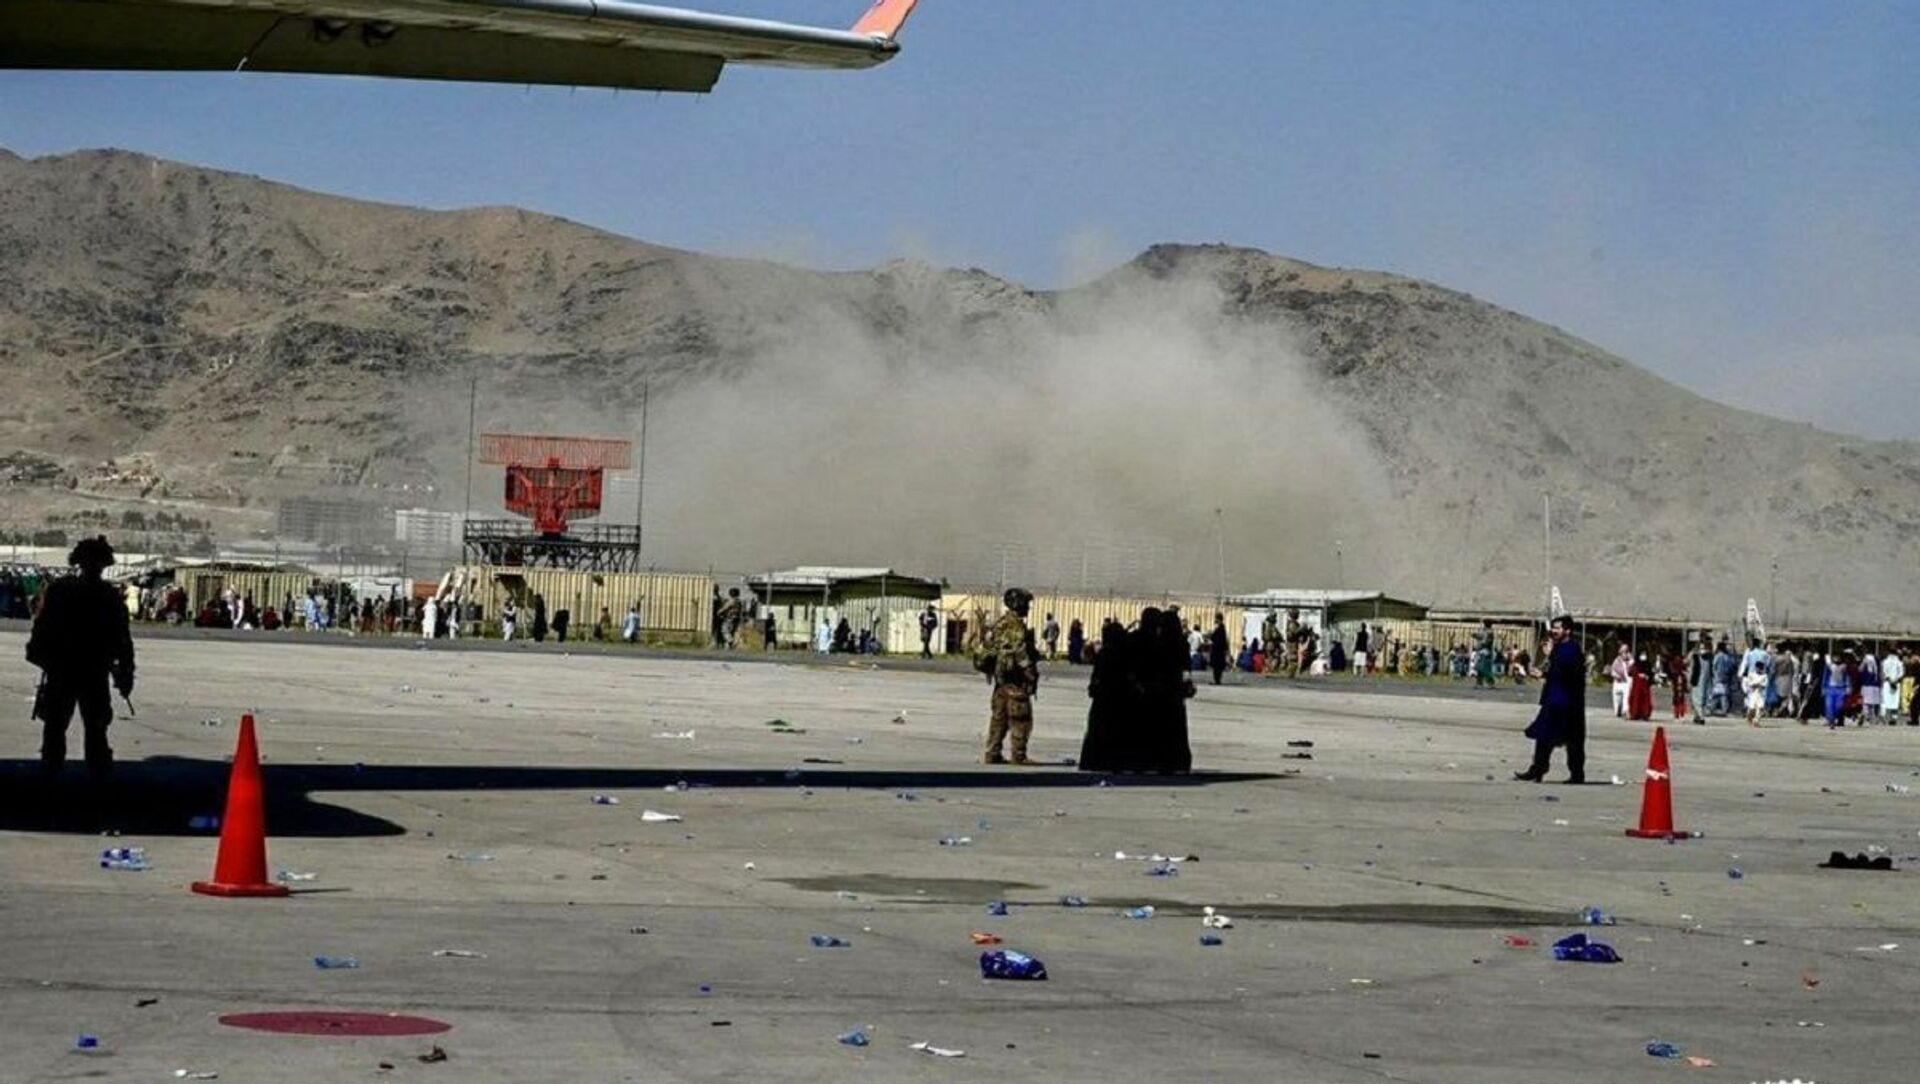 The moment when the explosion occurred at Kabul airport - Sputnik International, 1920, 26.08.2021